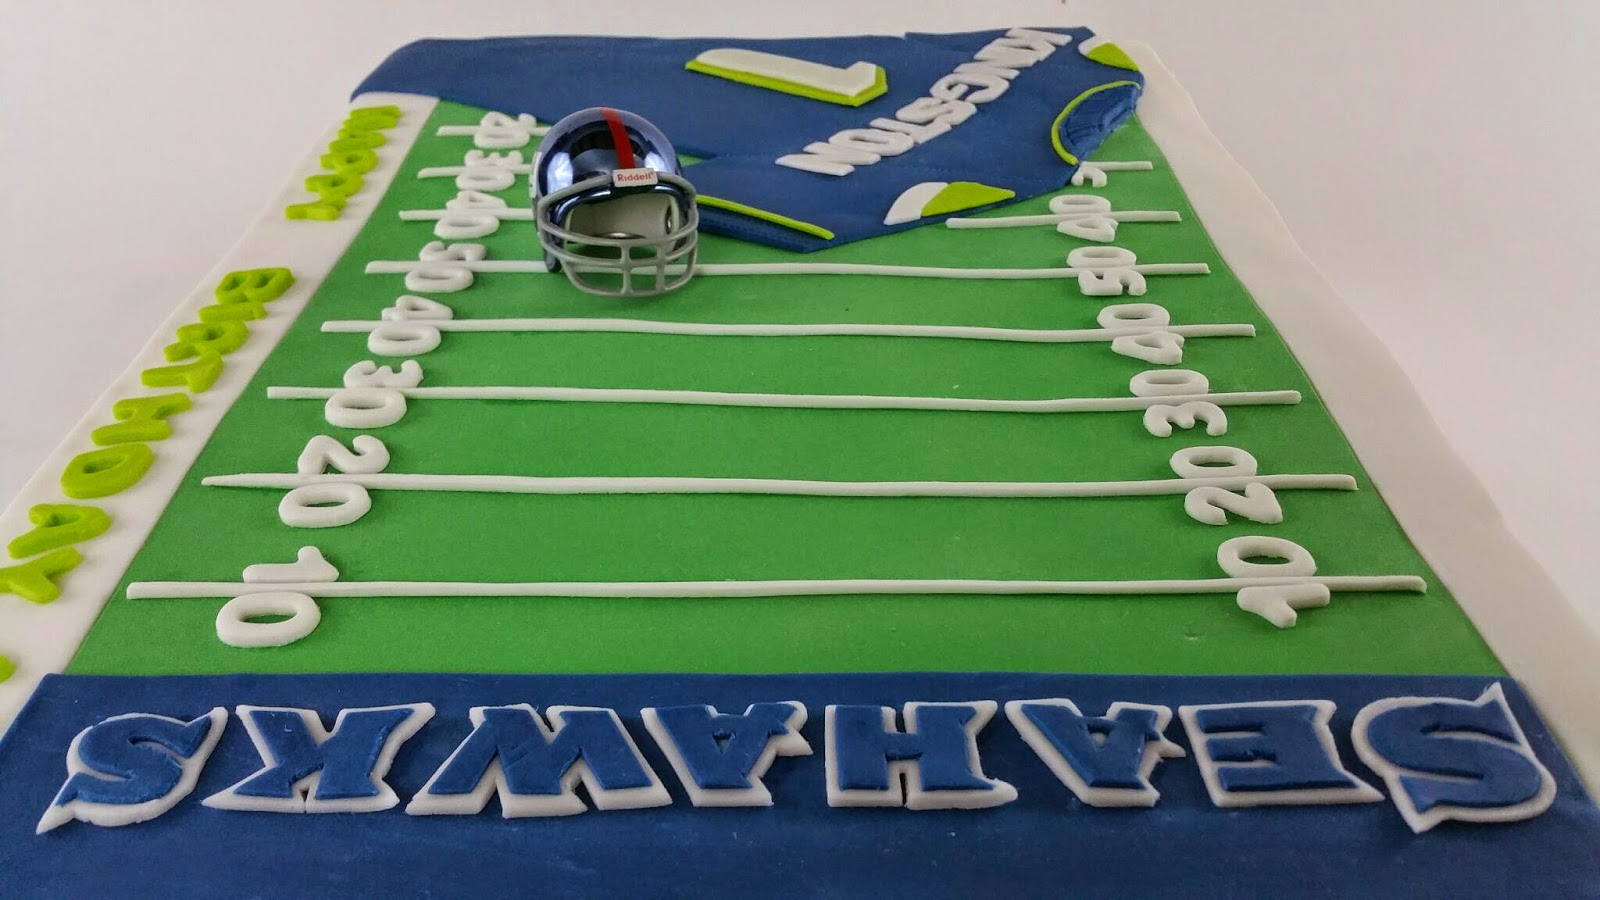 Seattle Seahawks Football Field Birthday Cake I Enjoyed Decorating This When Had Some Challenges